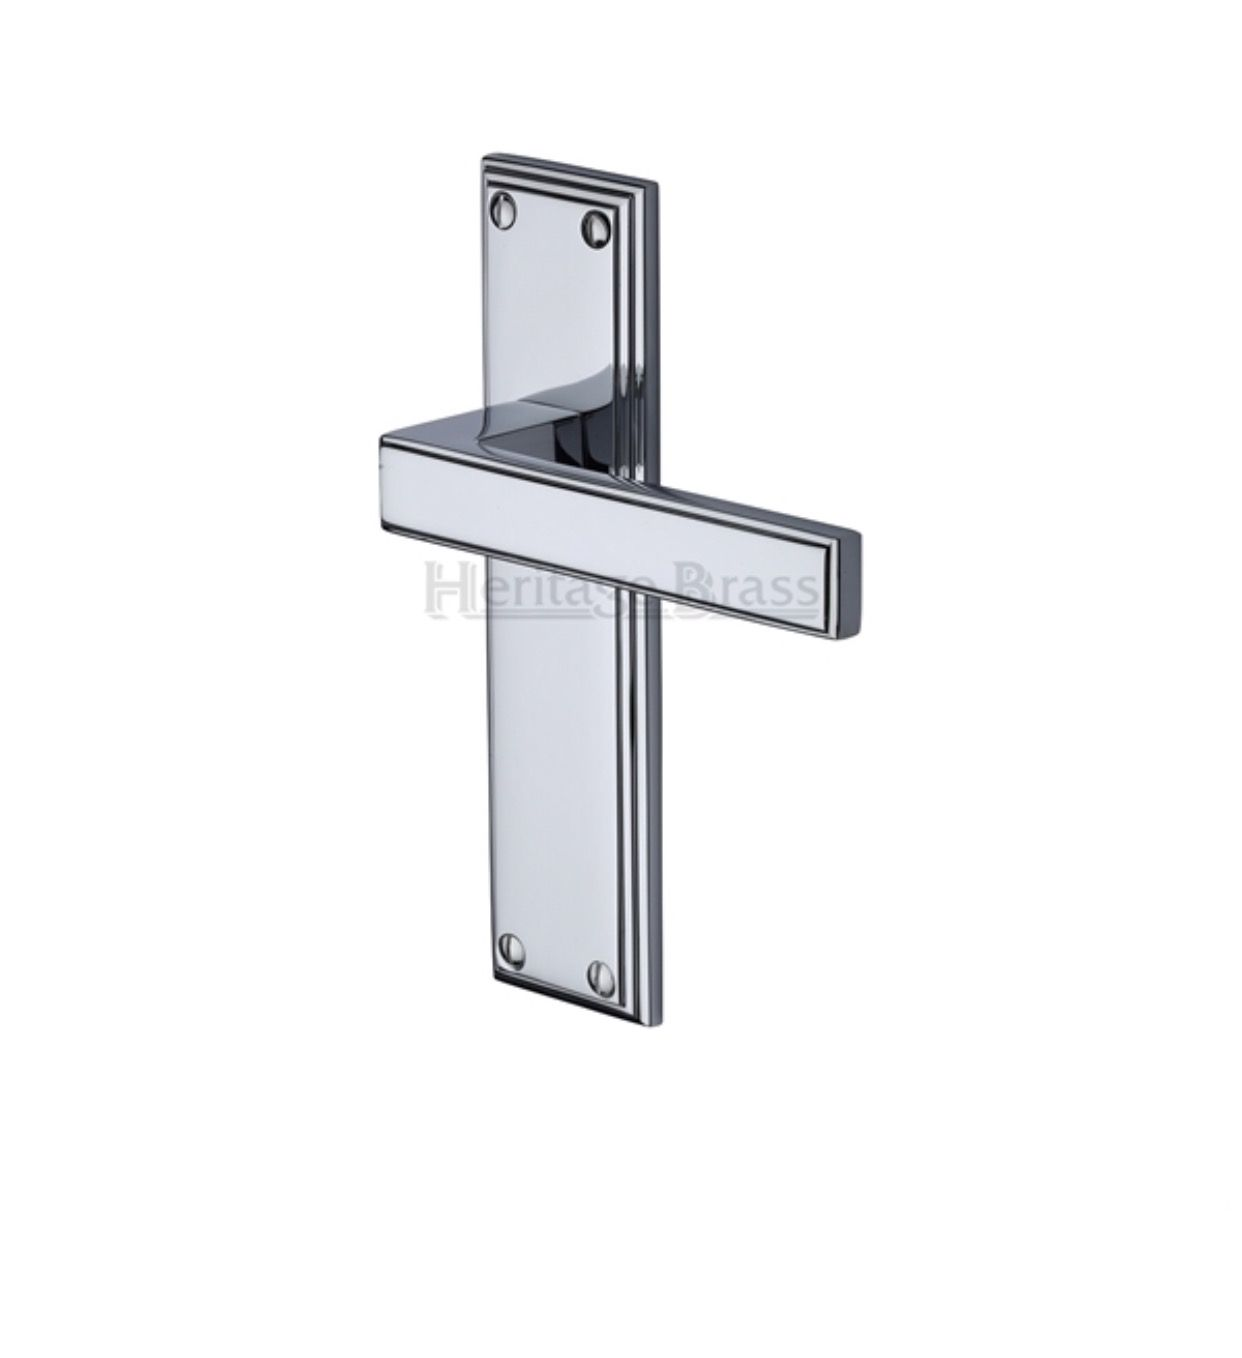 Atlantis Door Handles On Backplate Dimensions 185mm X 48mm